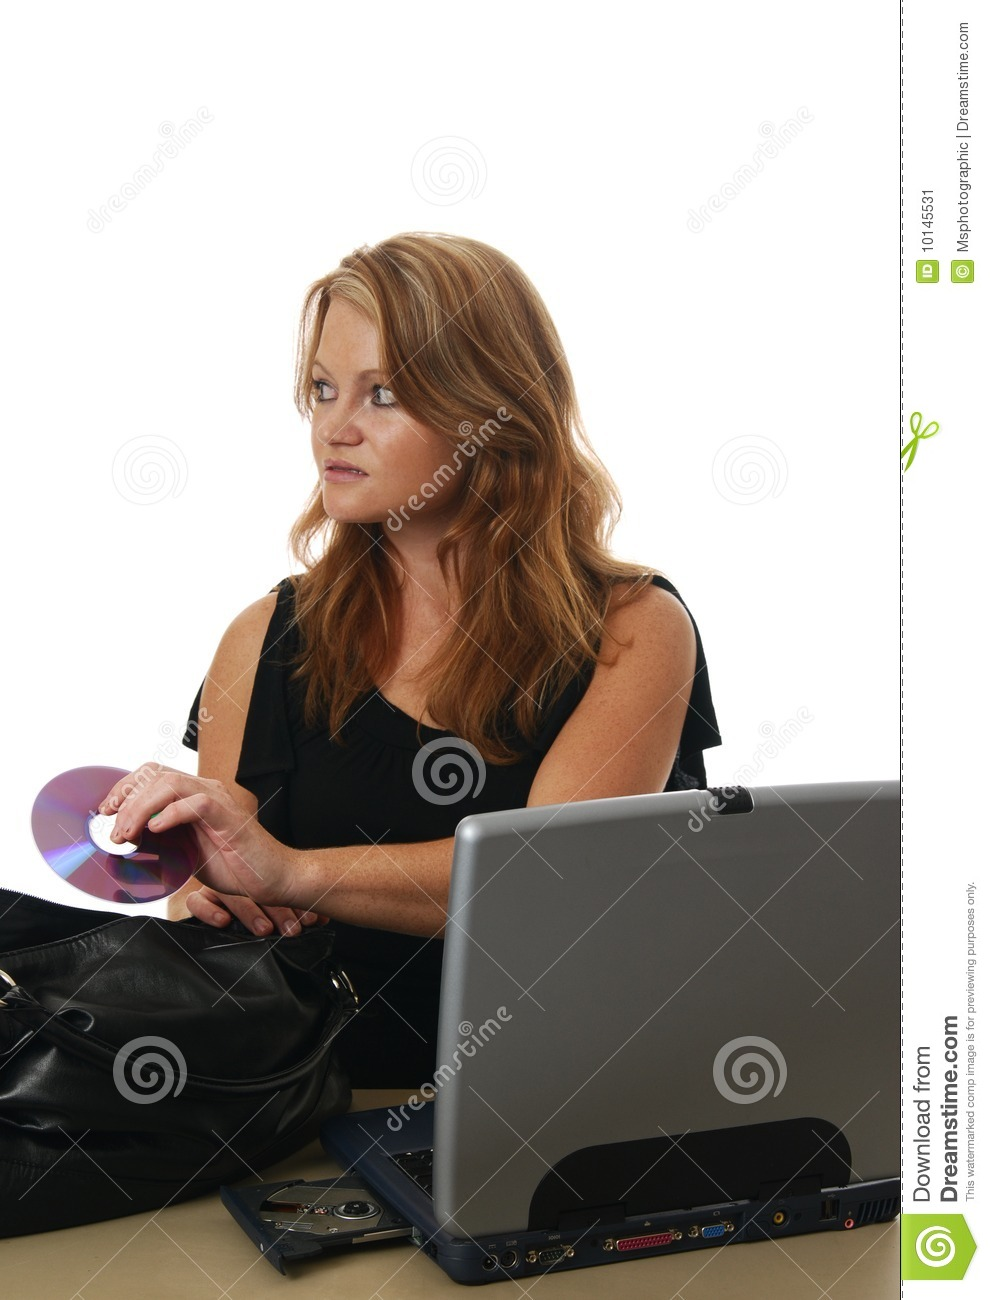 Employee Stealing Documents Stock Image